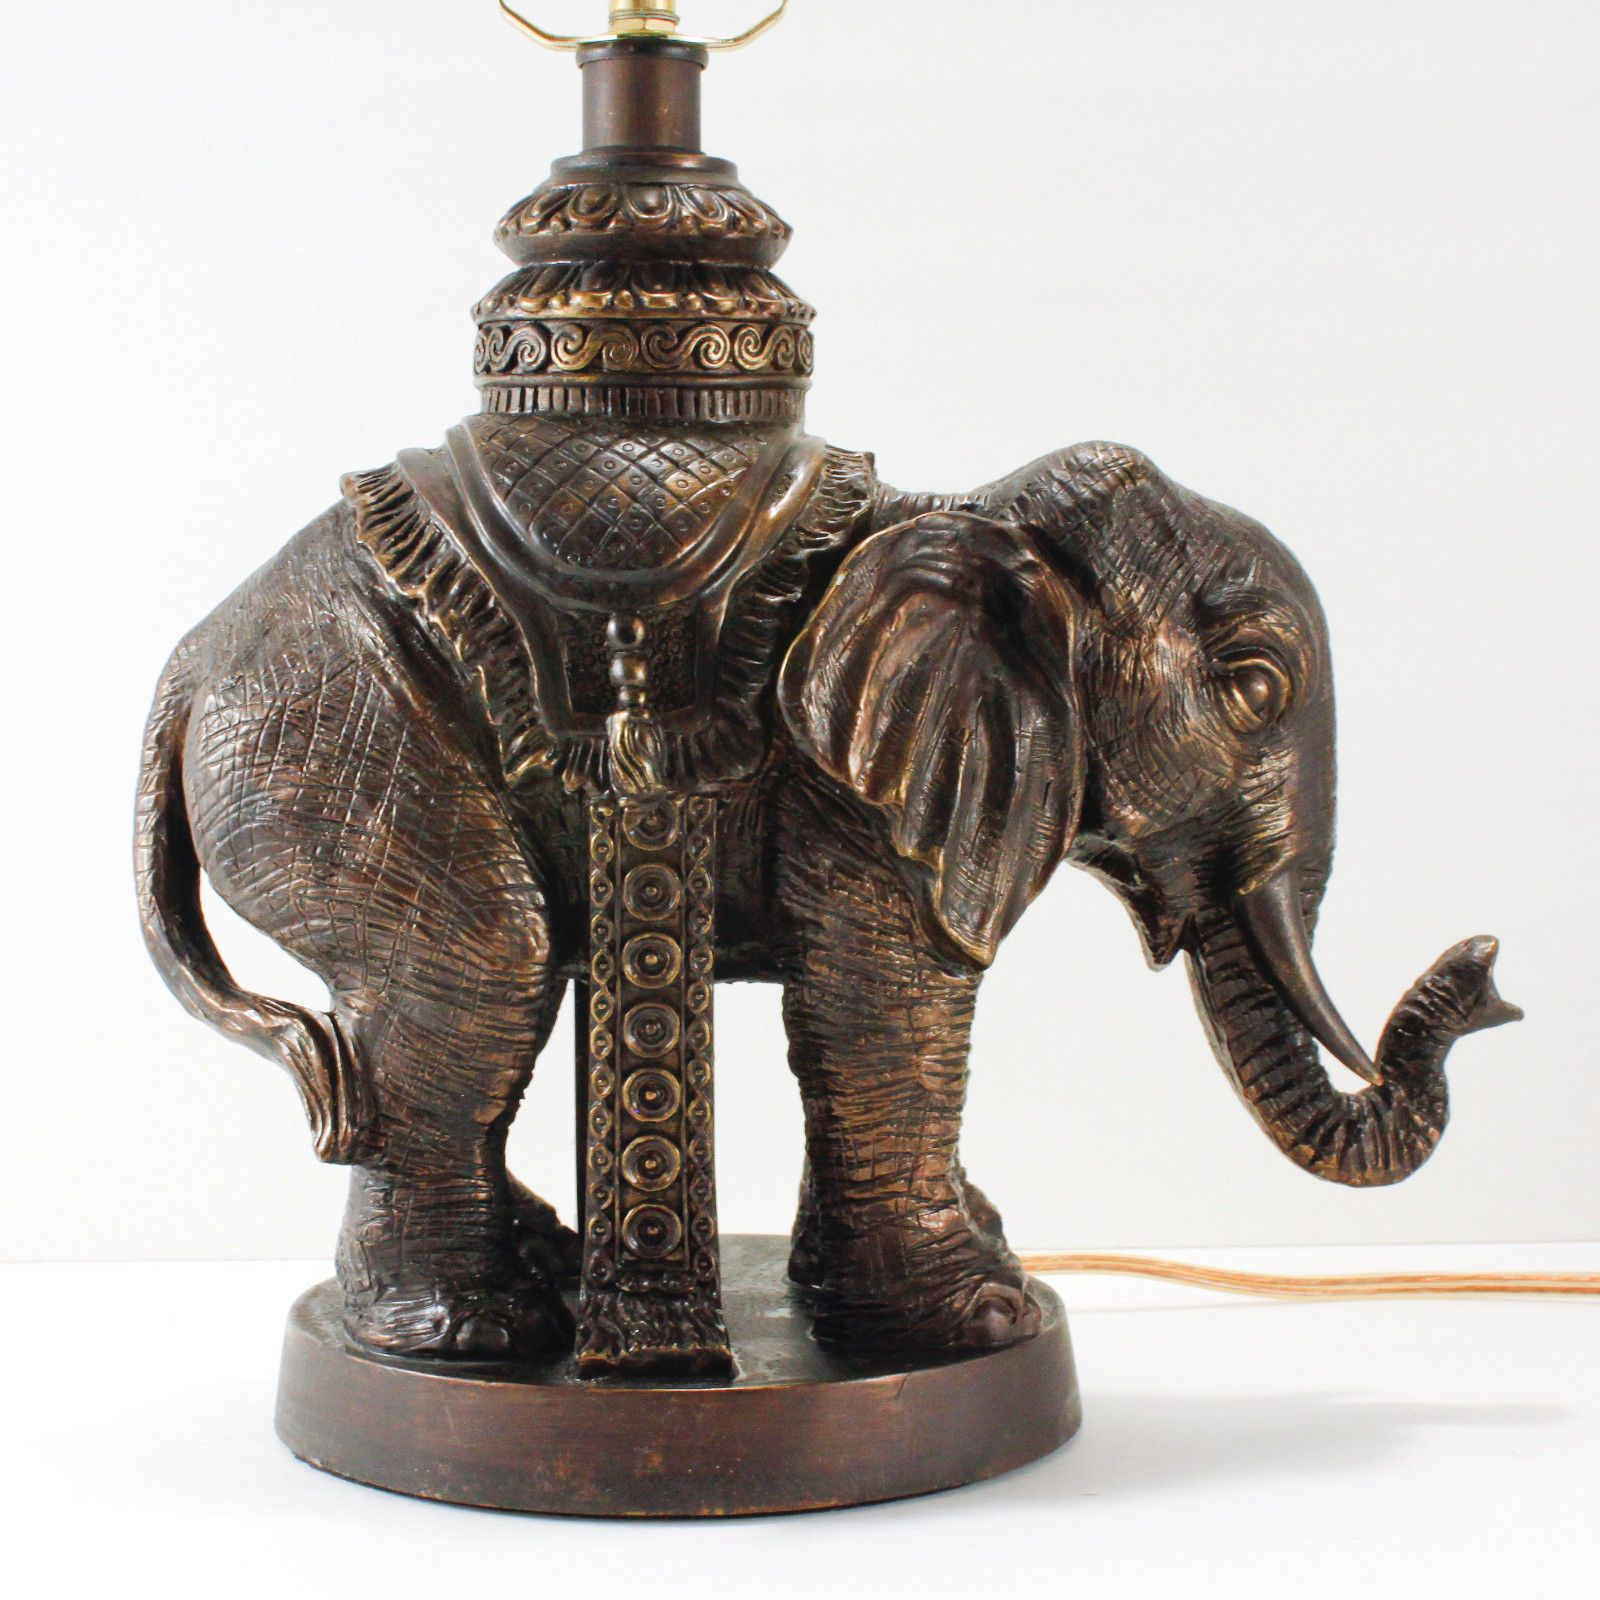 Elephant Lamp British India Old World Style Resin Bronze Tone Table Accent